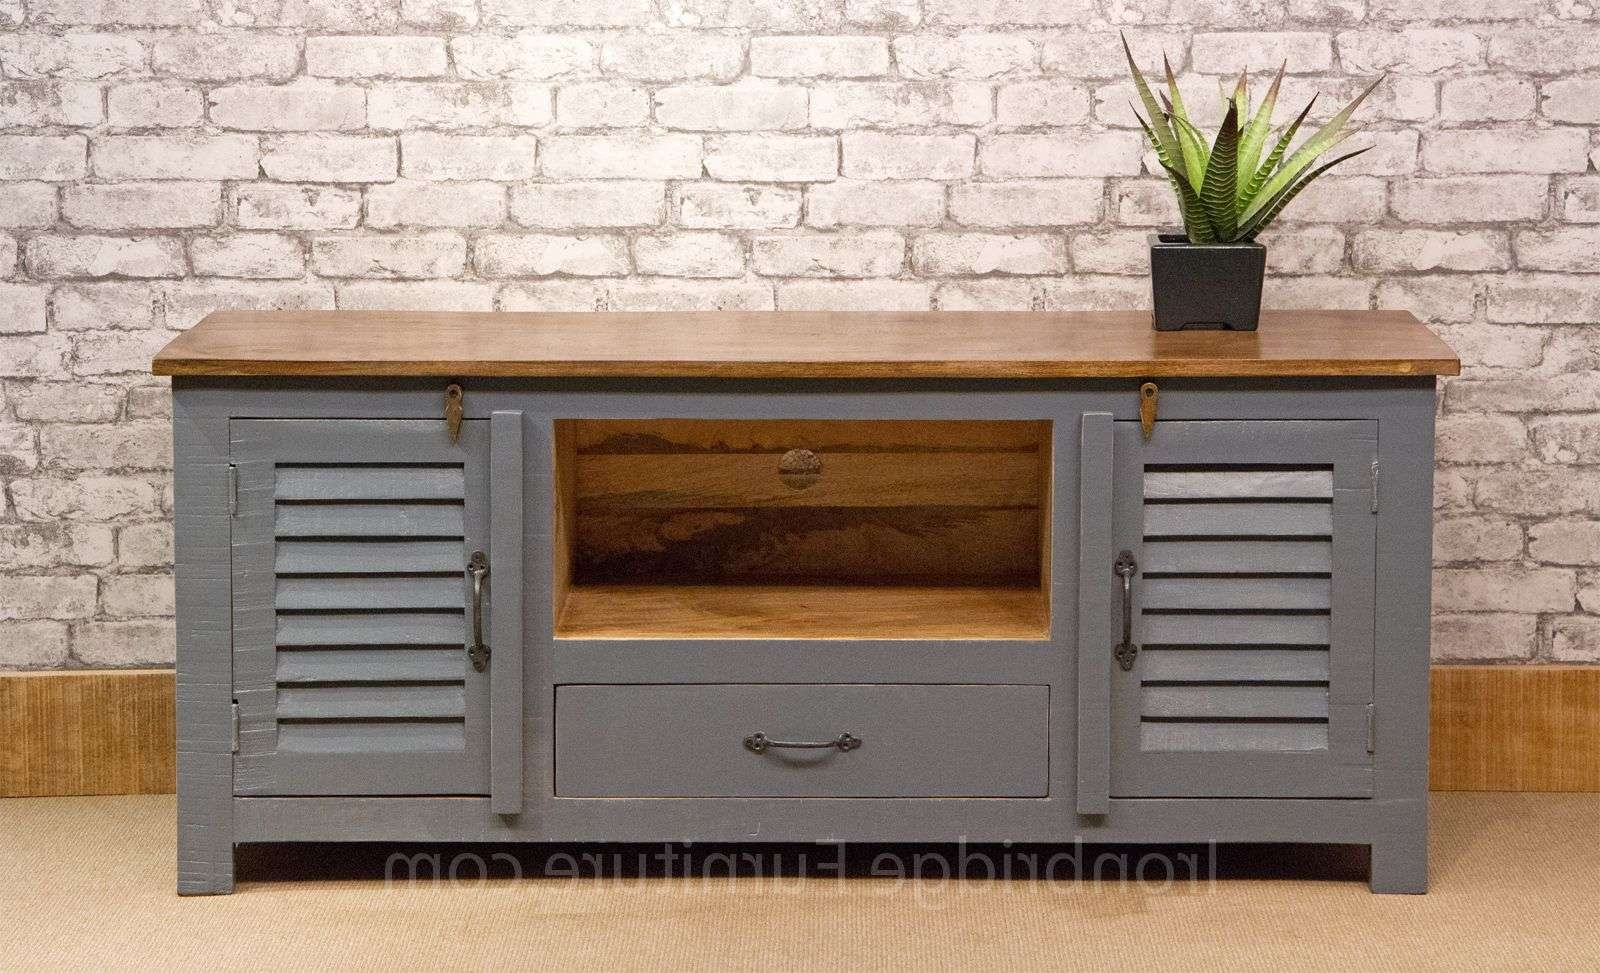 518 Vintage Style Painted Long Tv Cabinet – Dusky Grey Pertaining To Vintage Style Tv Cabinets (View 2 of 20)